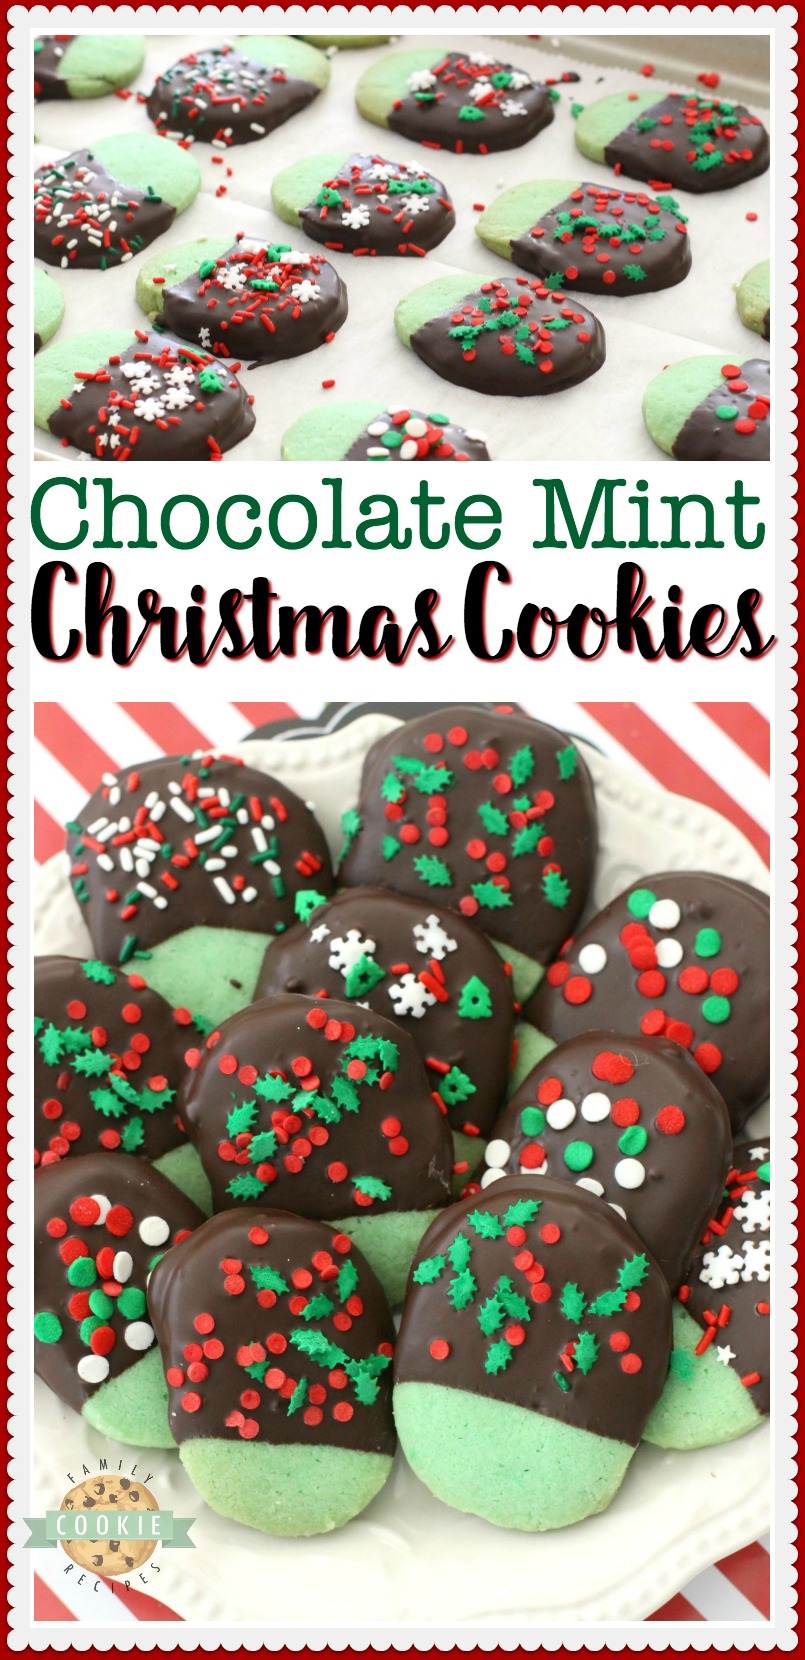 Mint Christmas Cookies made from a buttery shortbread cookie dipped in chocolate & topped with holiday sprinkles.Mint flavored Christmas Cookies perfect for cookie exchanges and gift plates! #Christmas #cookies #mint #chocolate #cookie #recipe #holiday #baking from FAMILY COOKIE RECIPES